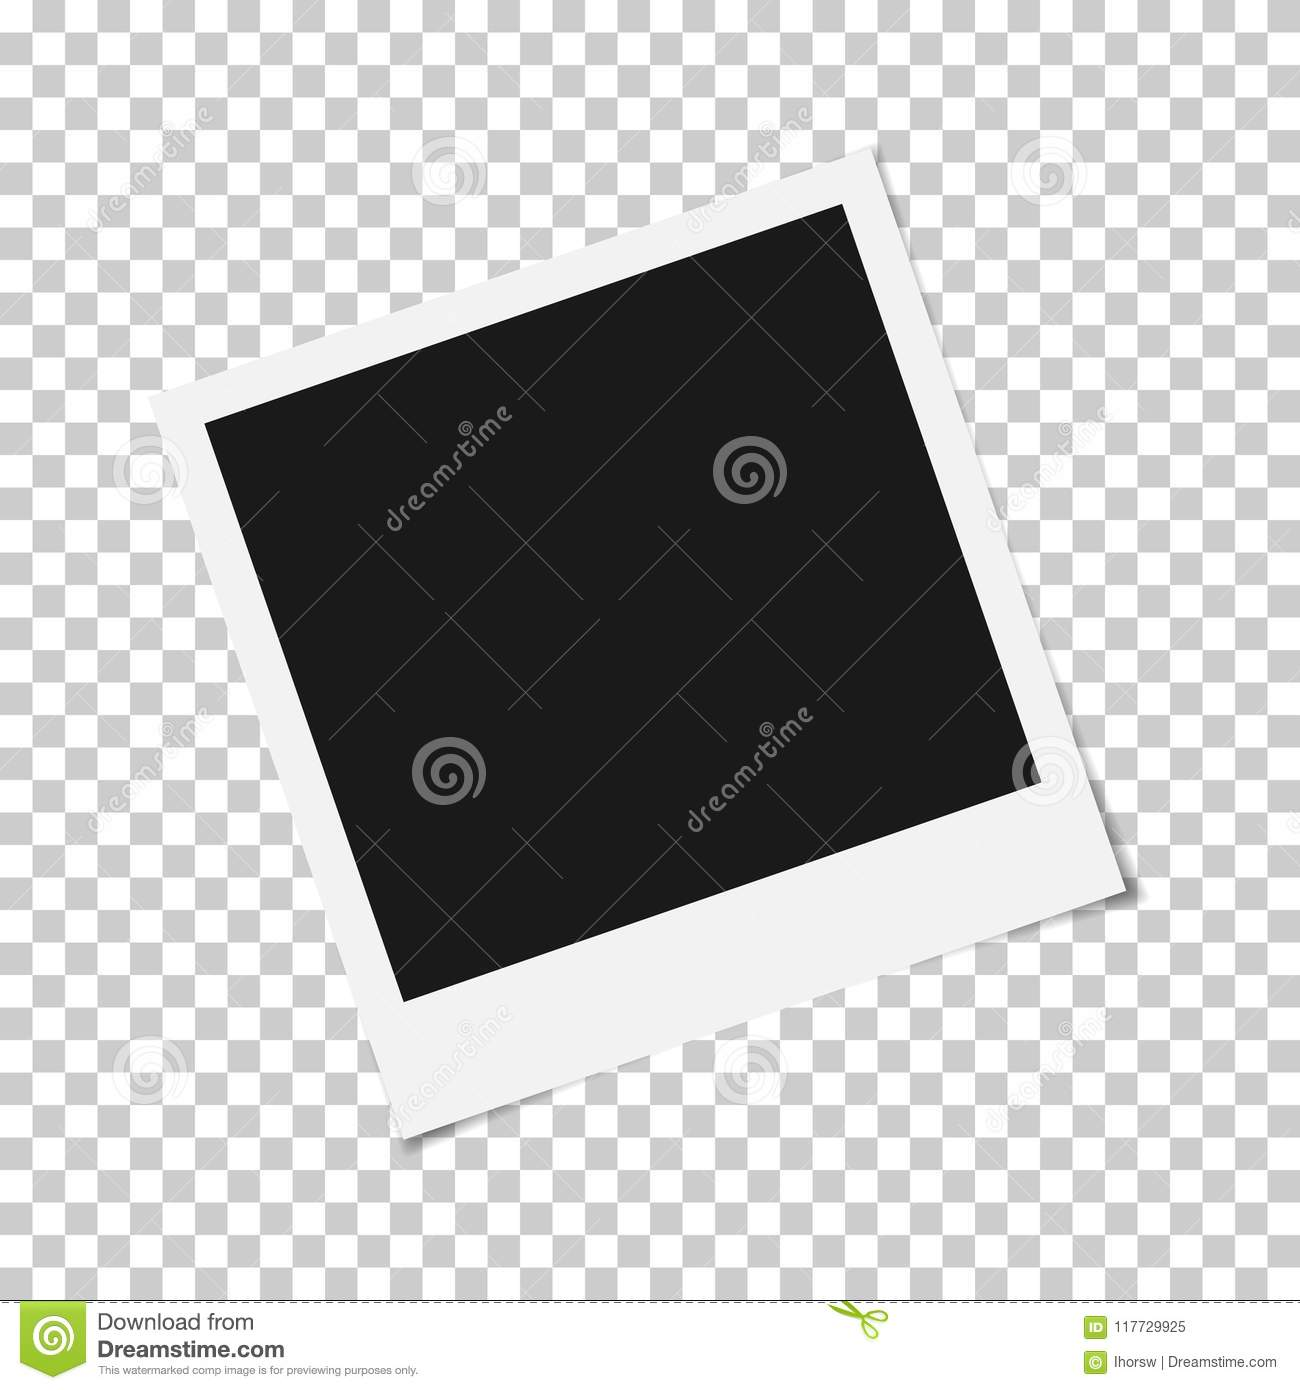 blank photo polaroid frame with adhesive tape isolated on